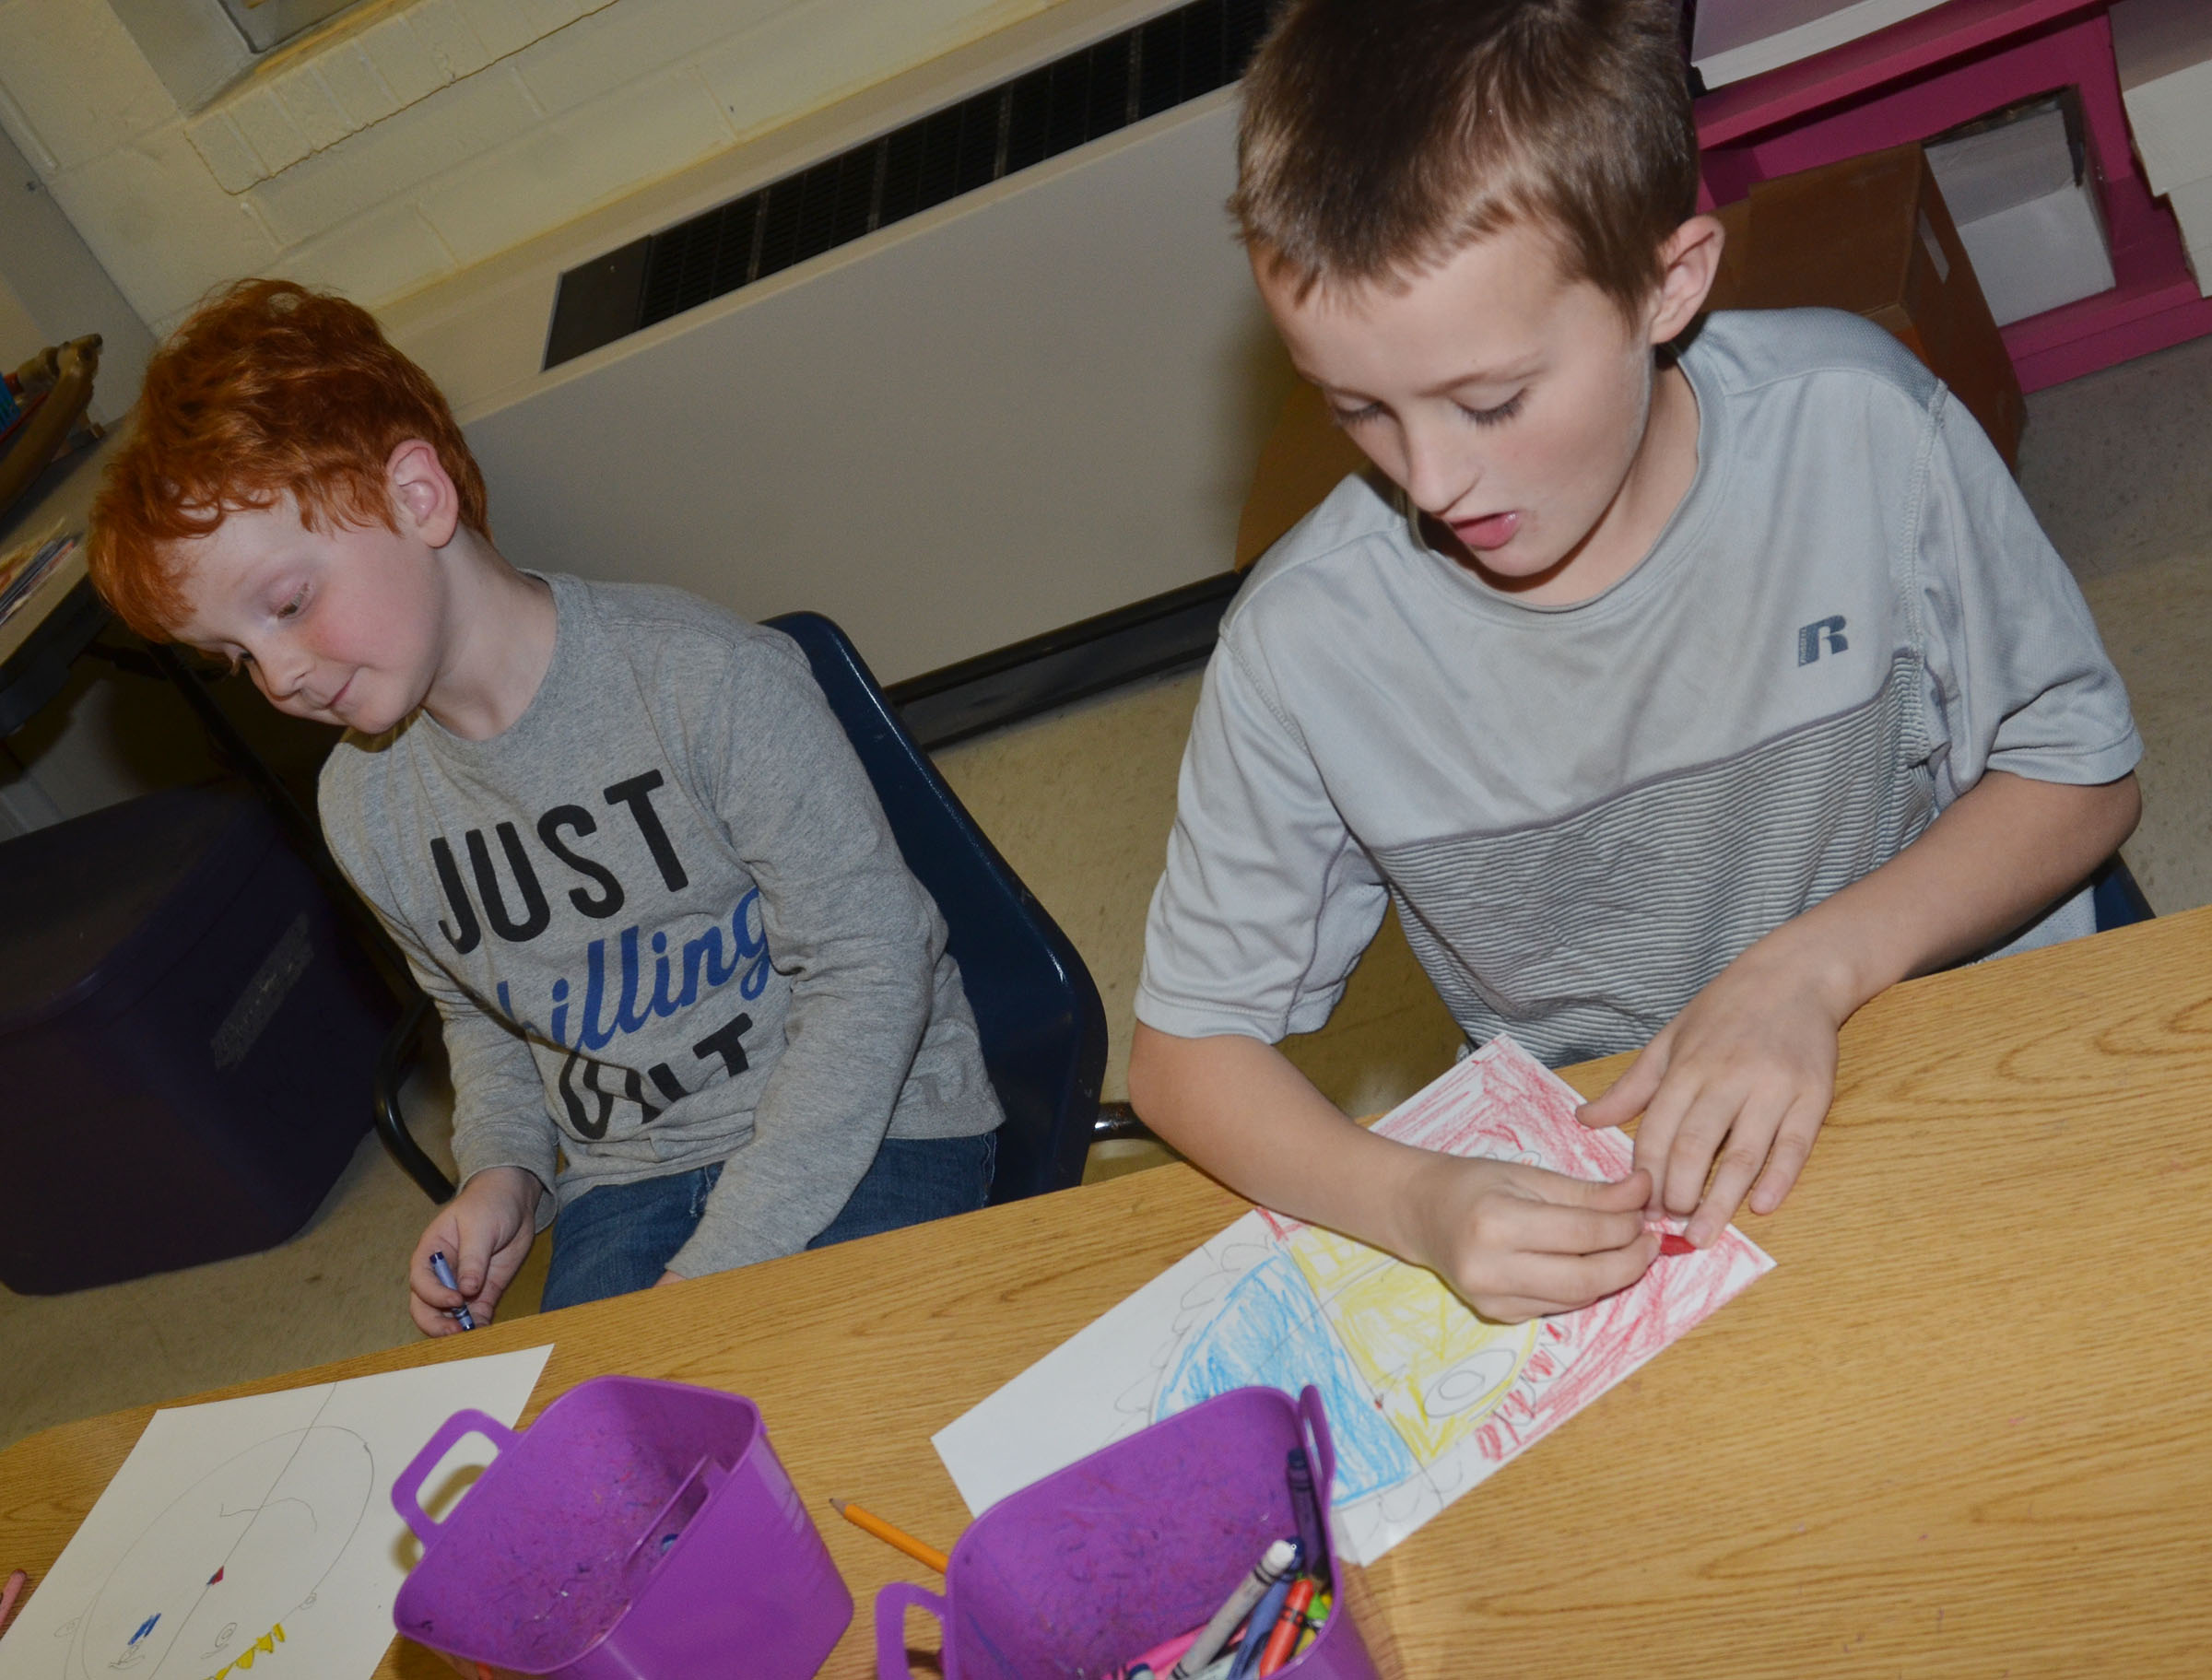 CES second-graders Gavin Martin, at left, and Zachary Cox color their warm and cool color faces.